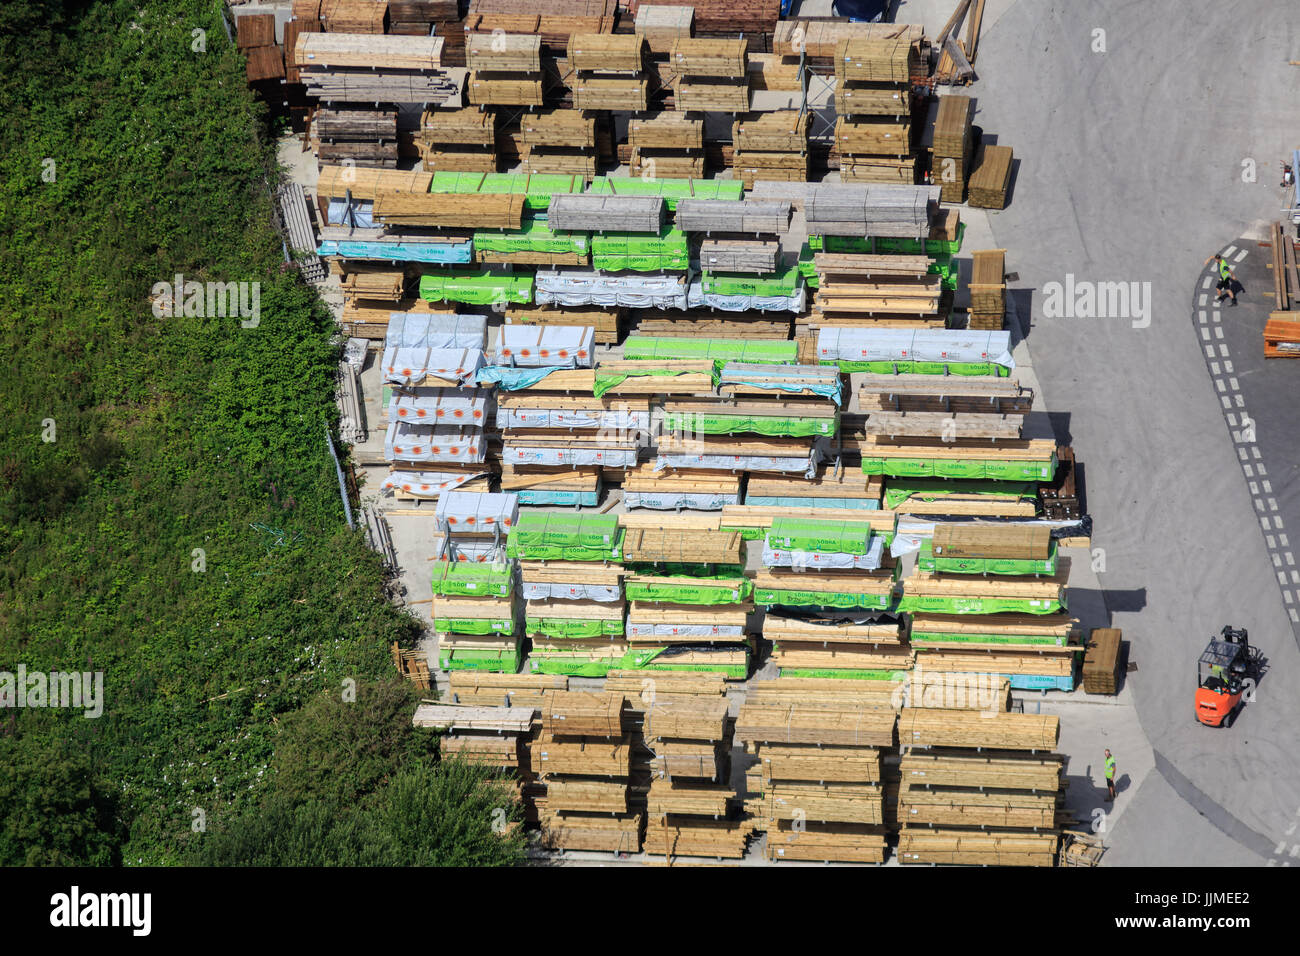 An aerial view of building materials being stored outside at a Builders Merchants - Stock Image